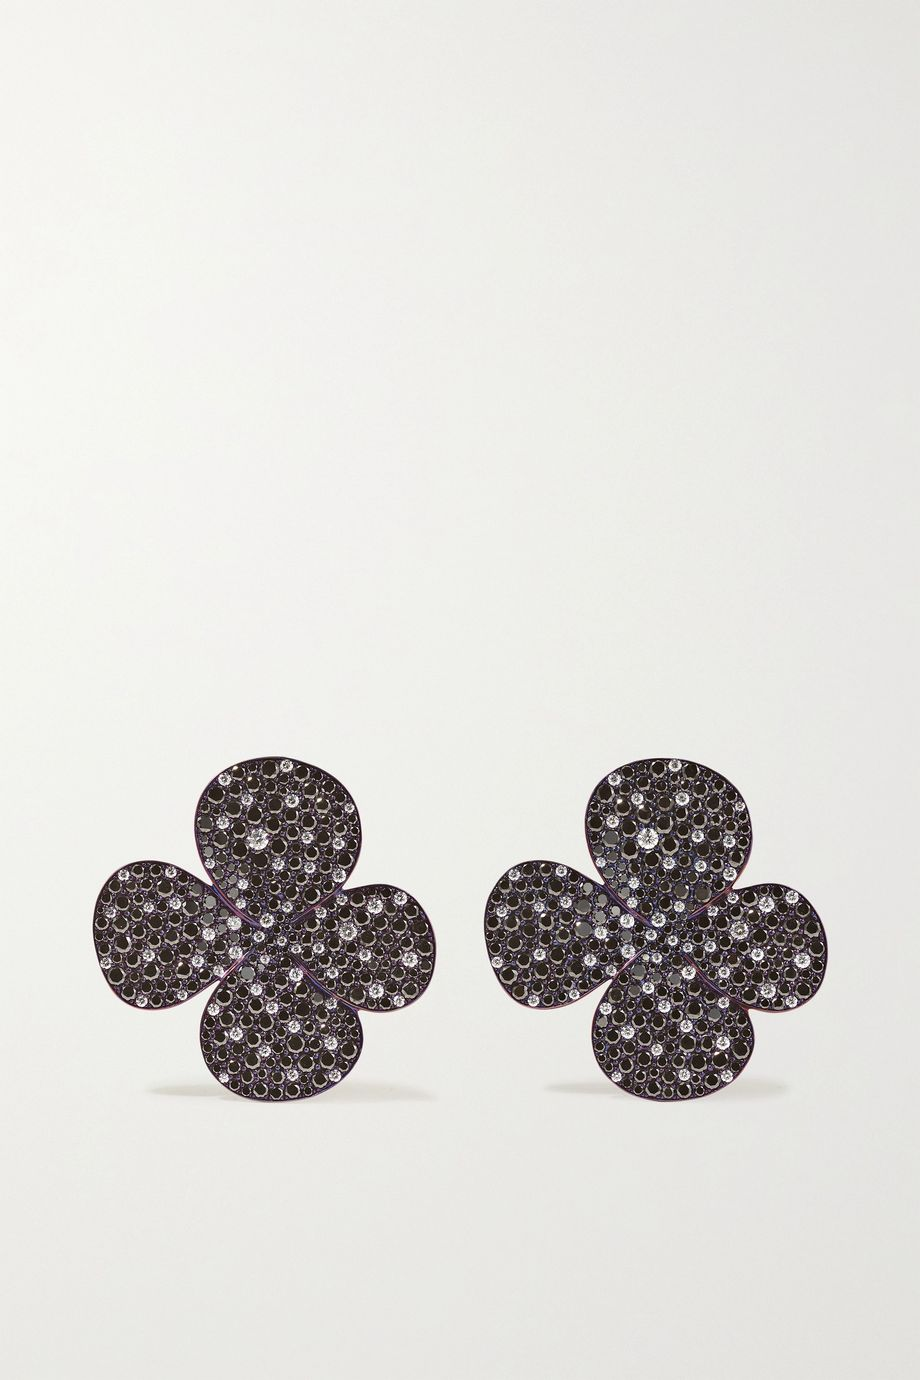 G by Glenn Spiro Clover titanium diamond earrings